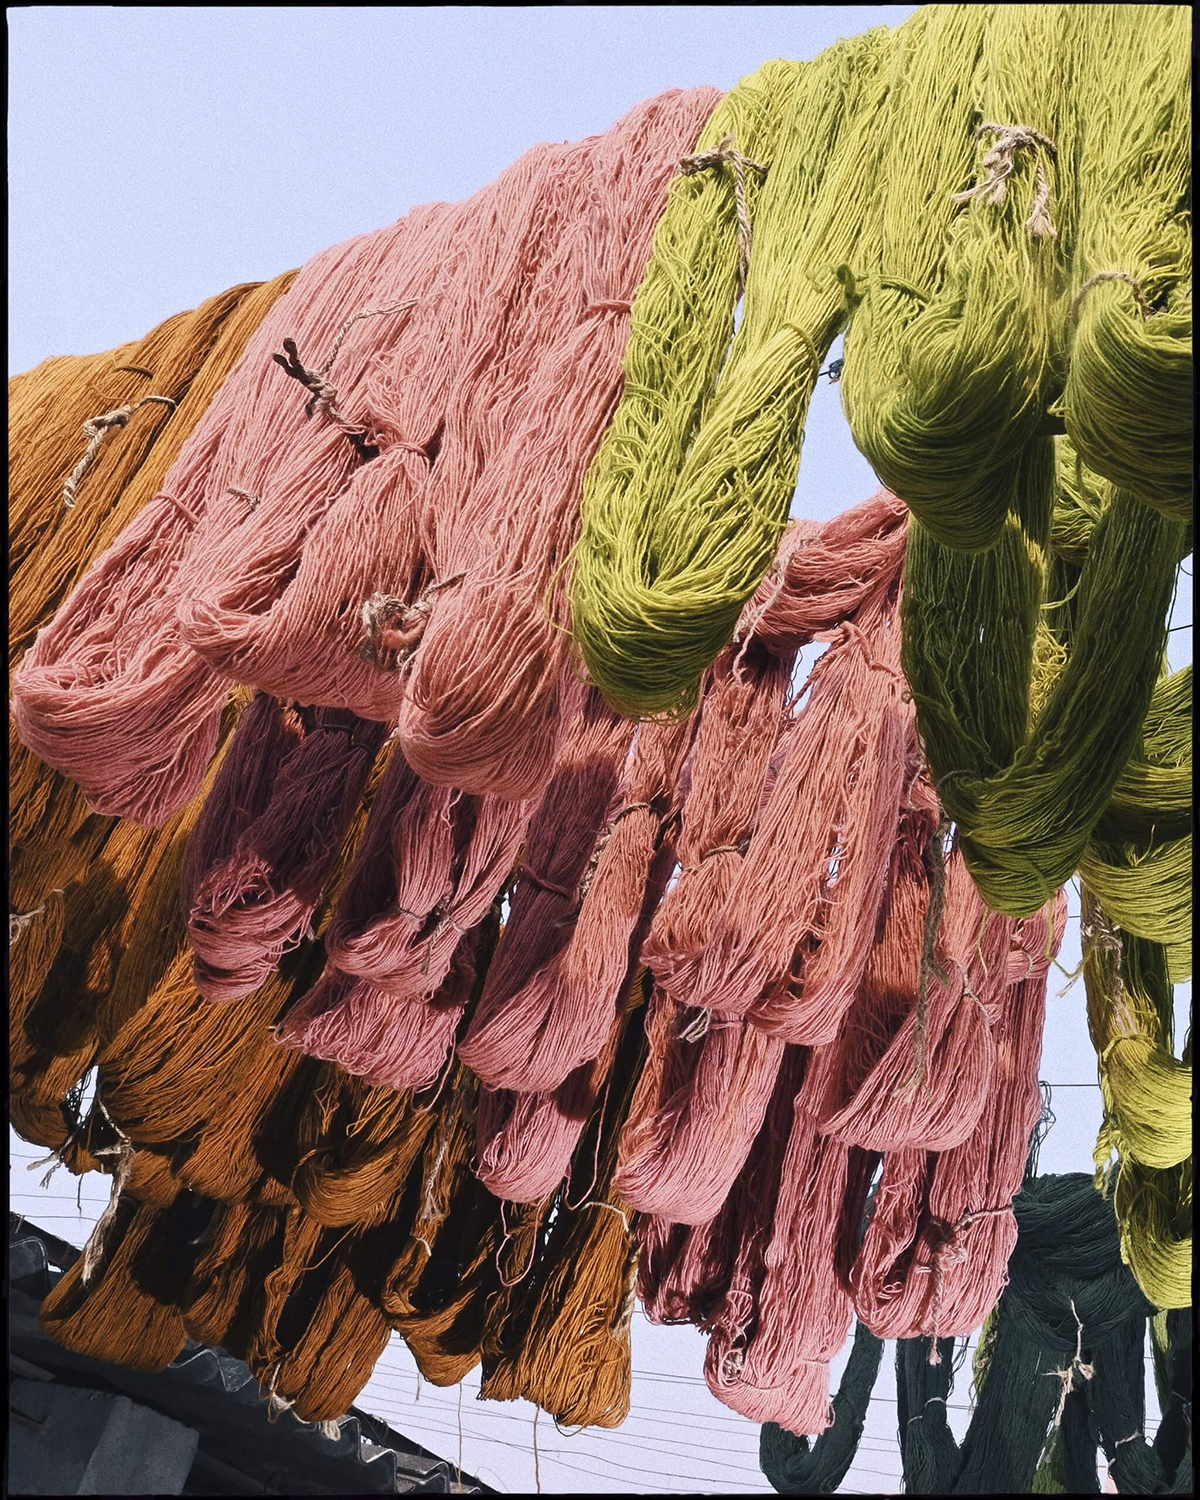 Dyed wool hanging out to dry.